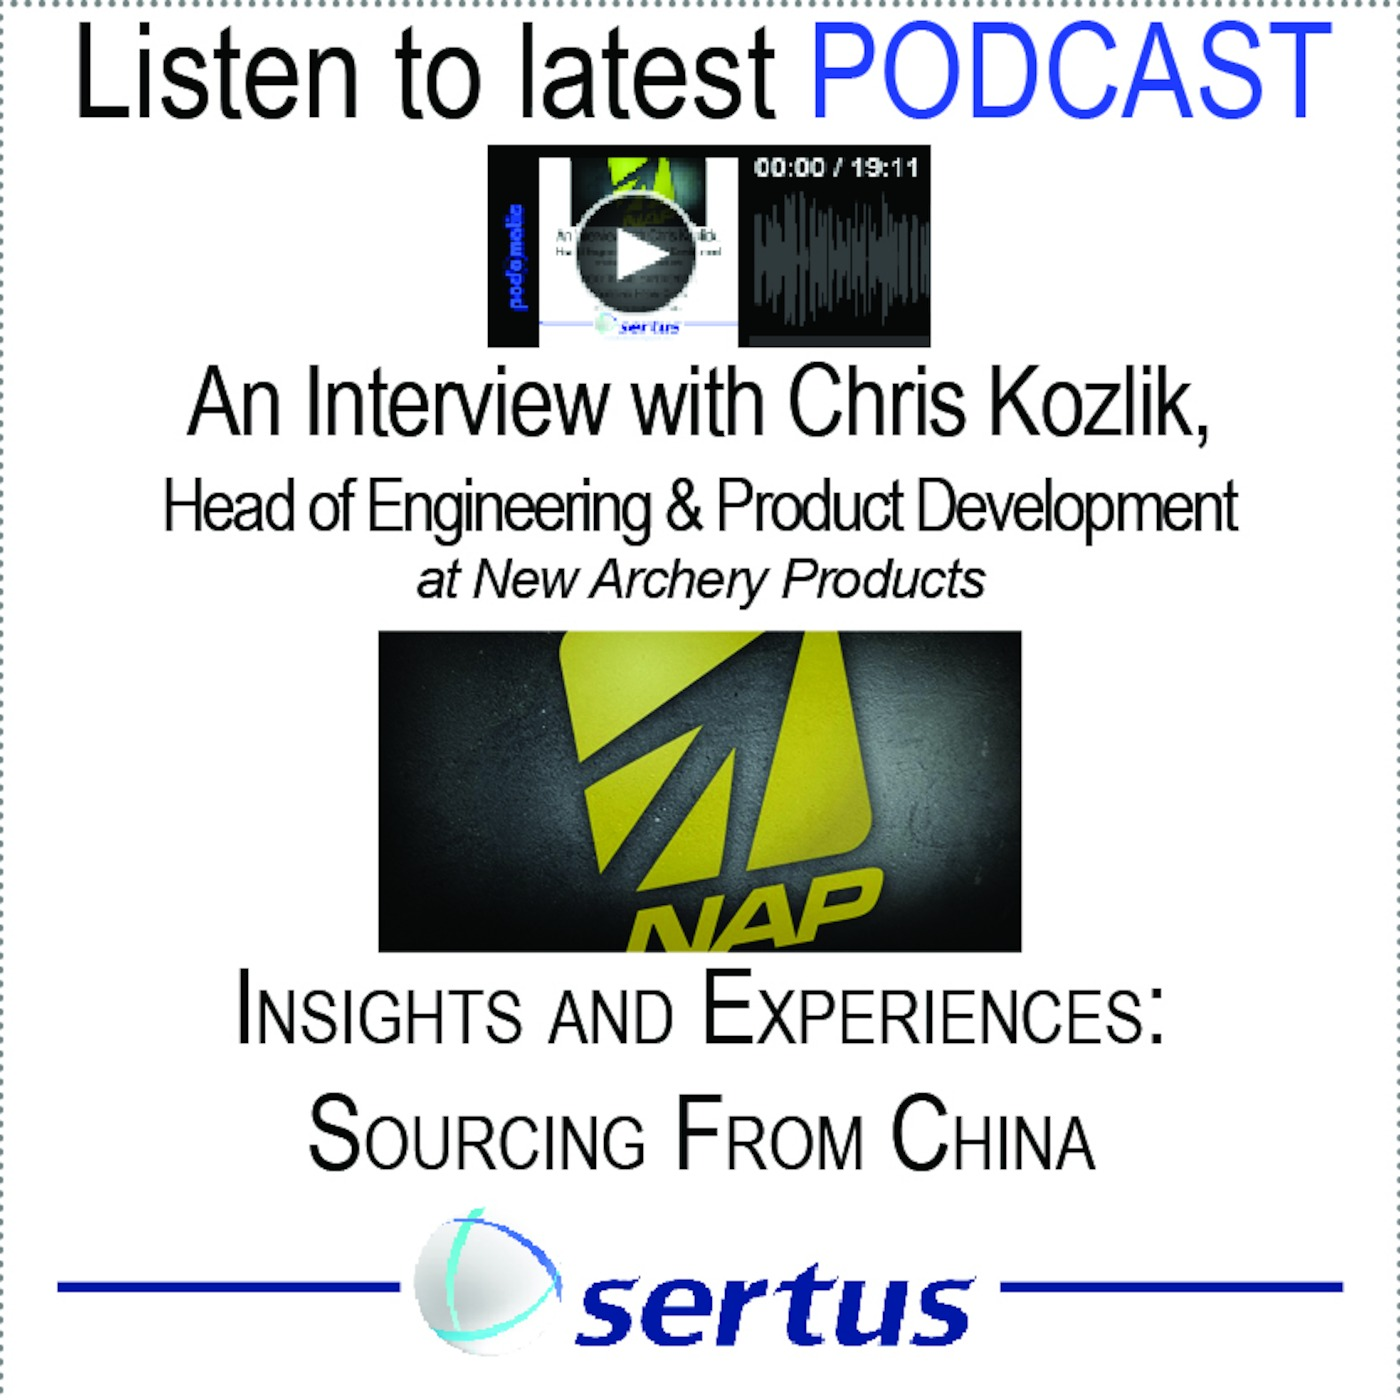 China Sourcing: Challenges and Solutions - an Interview with Chris Kozlik Head of Engineering and Product Development for New Archery Products